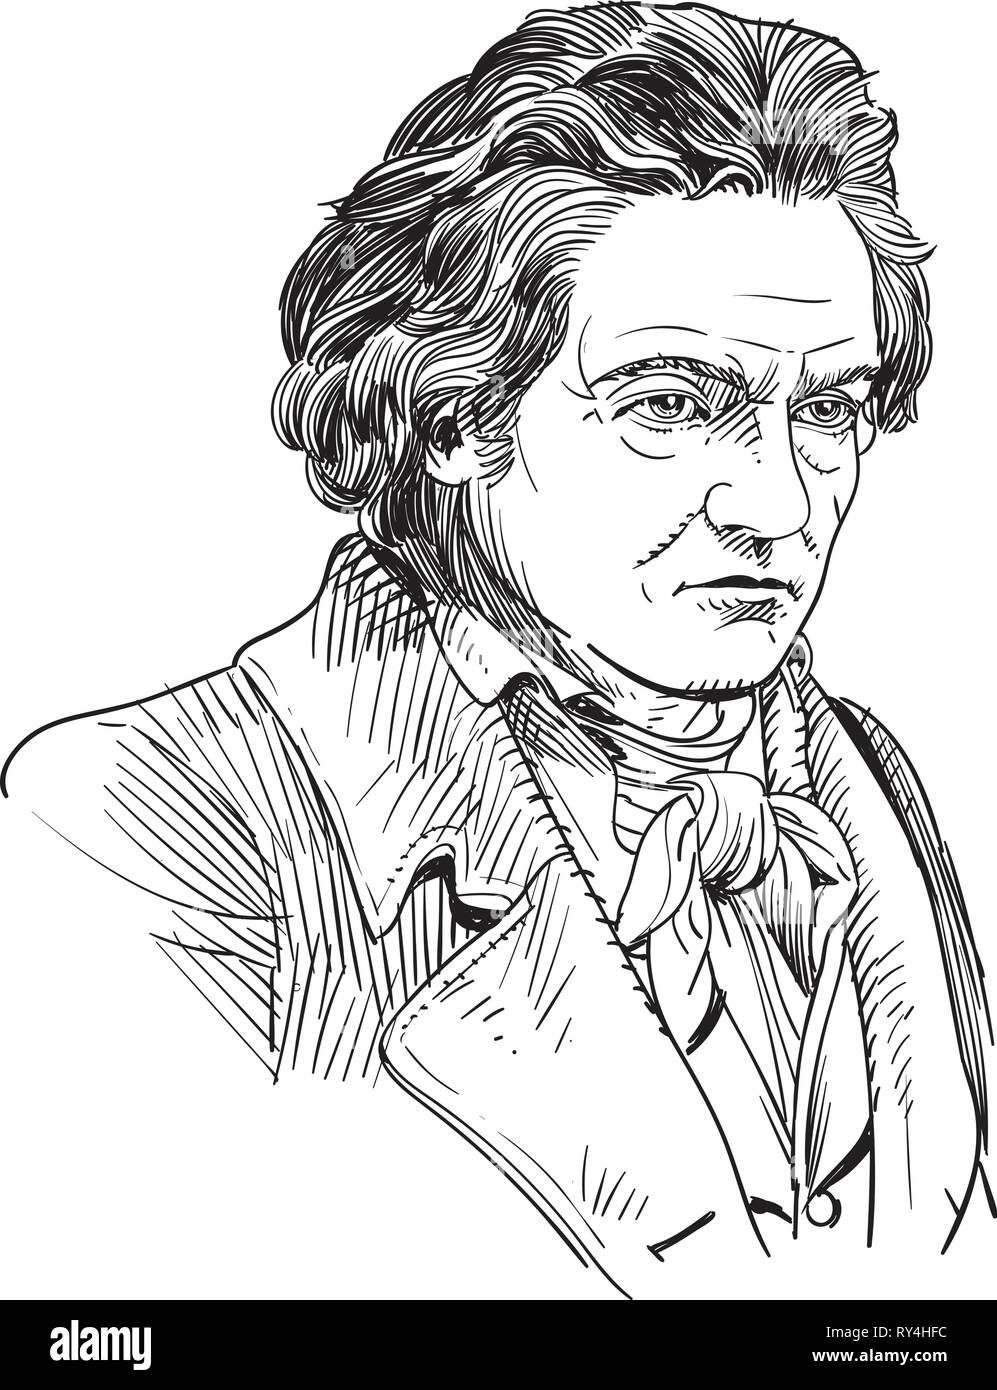 Ludwig van Beethoven portraitin line art illustration Stock Vector